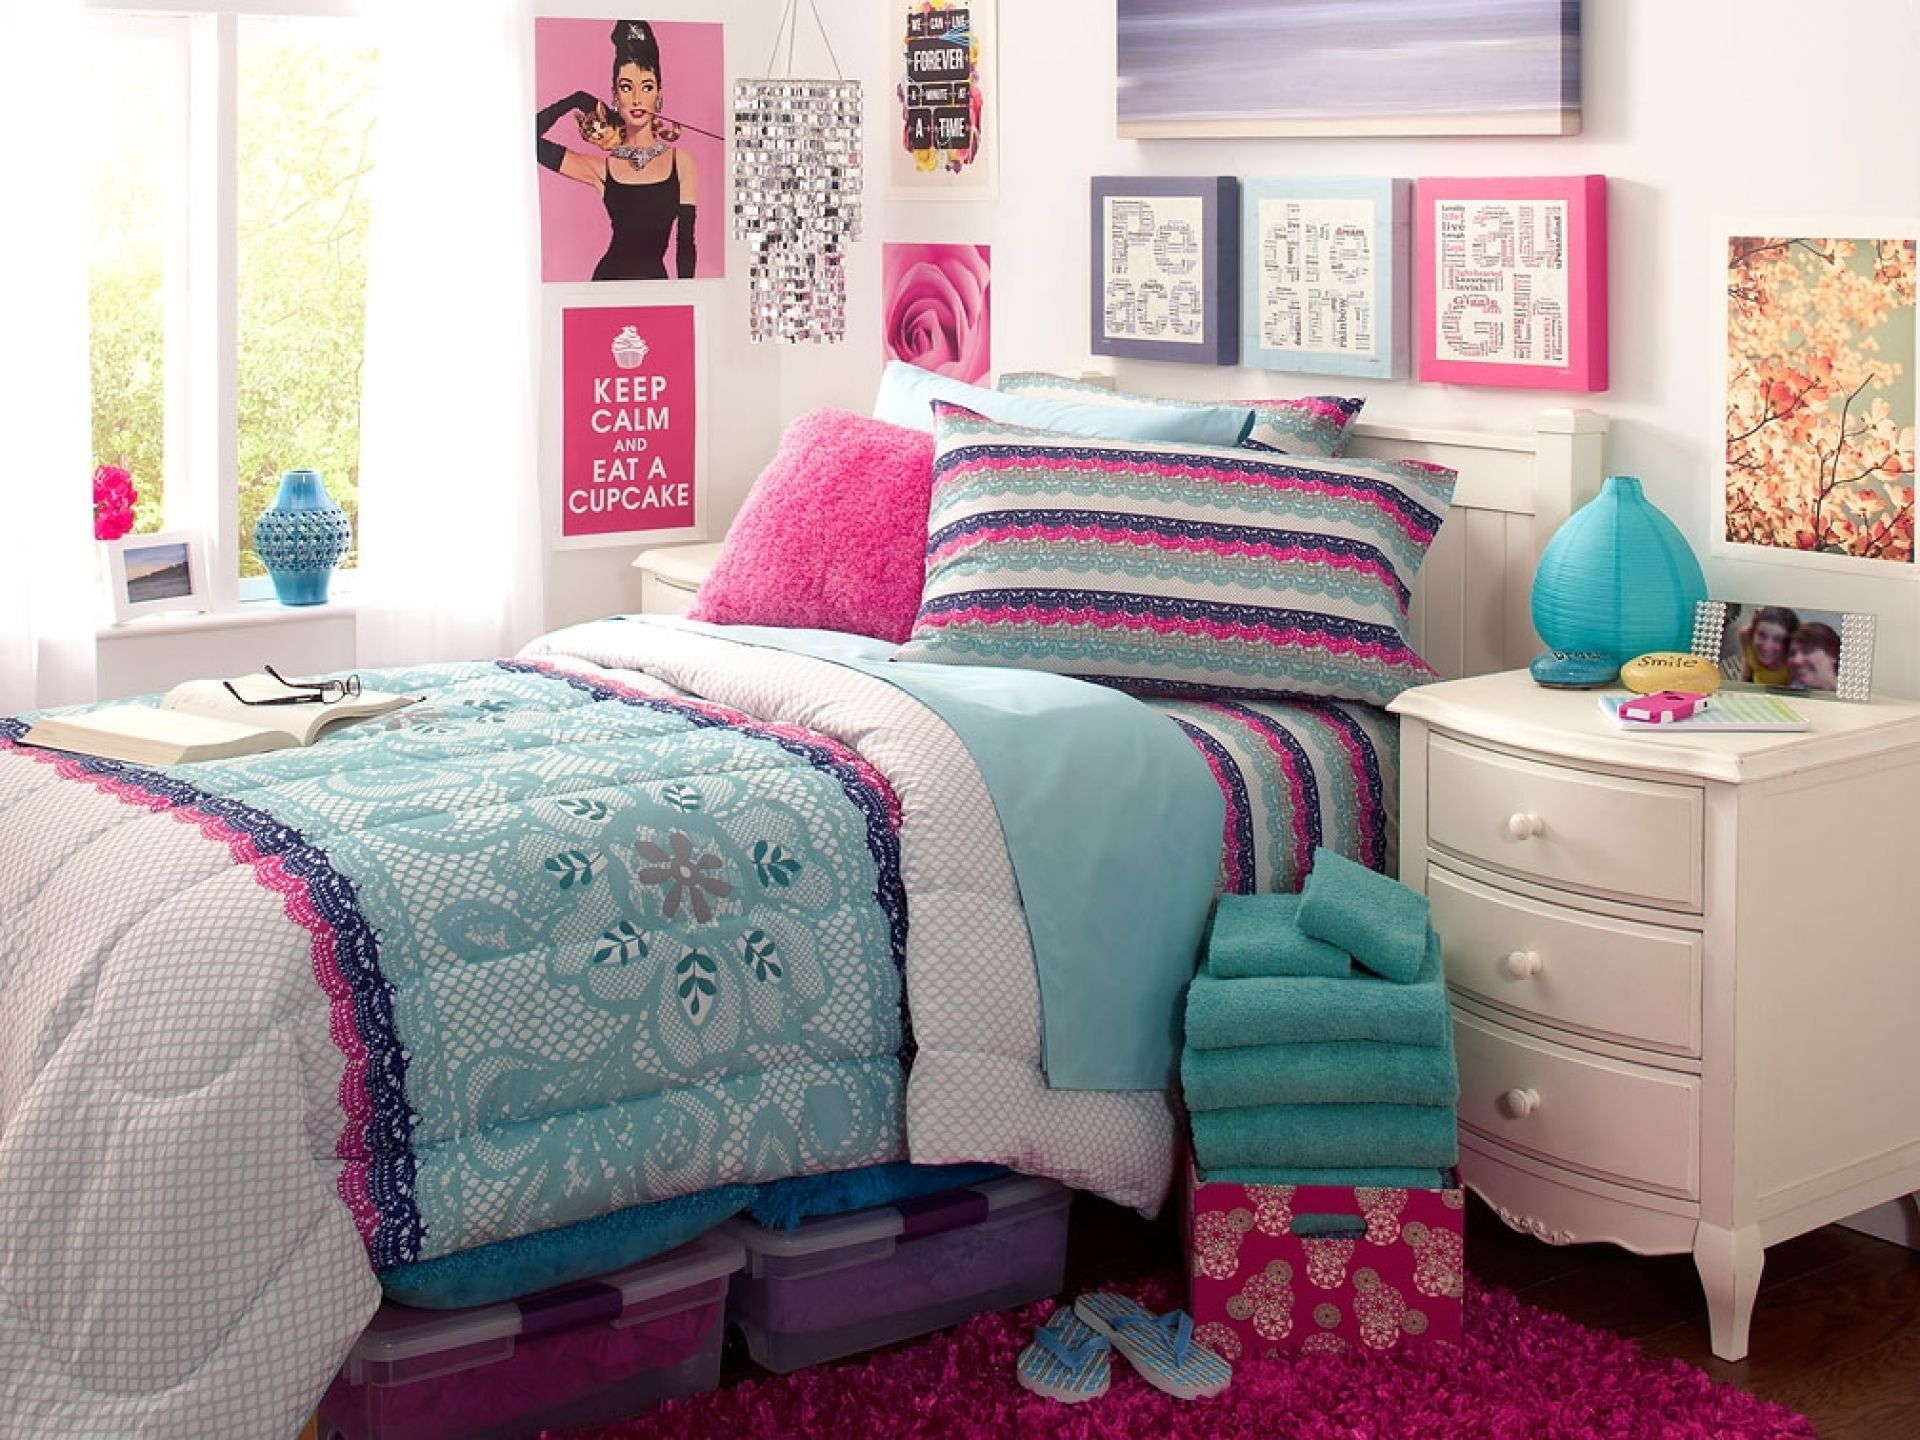 Teenage Room Decorating Ideas gaudy teenage bedroom ideas to support the huge brainchild - http